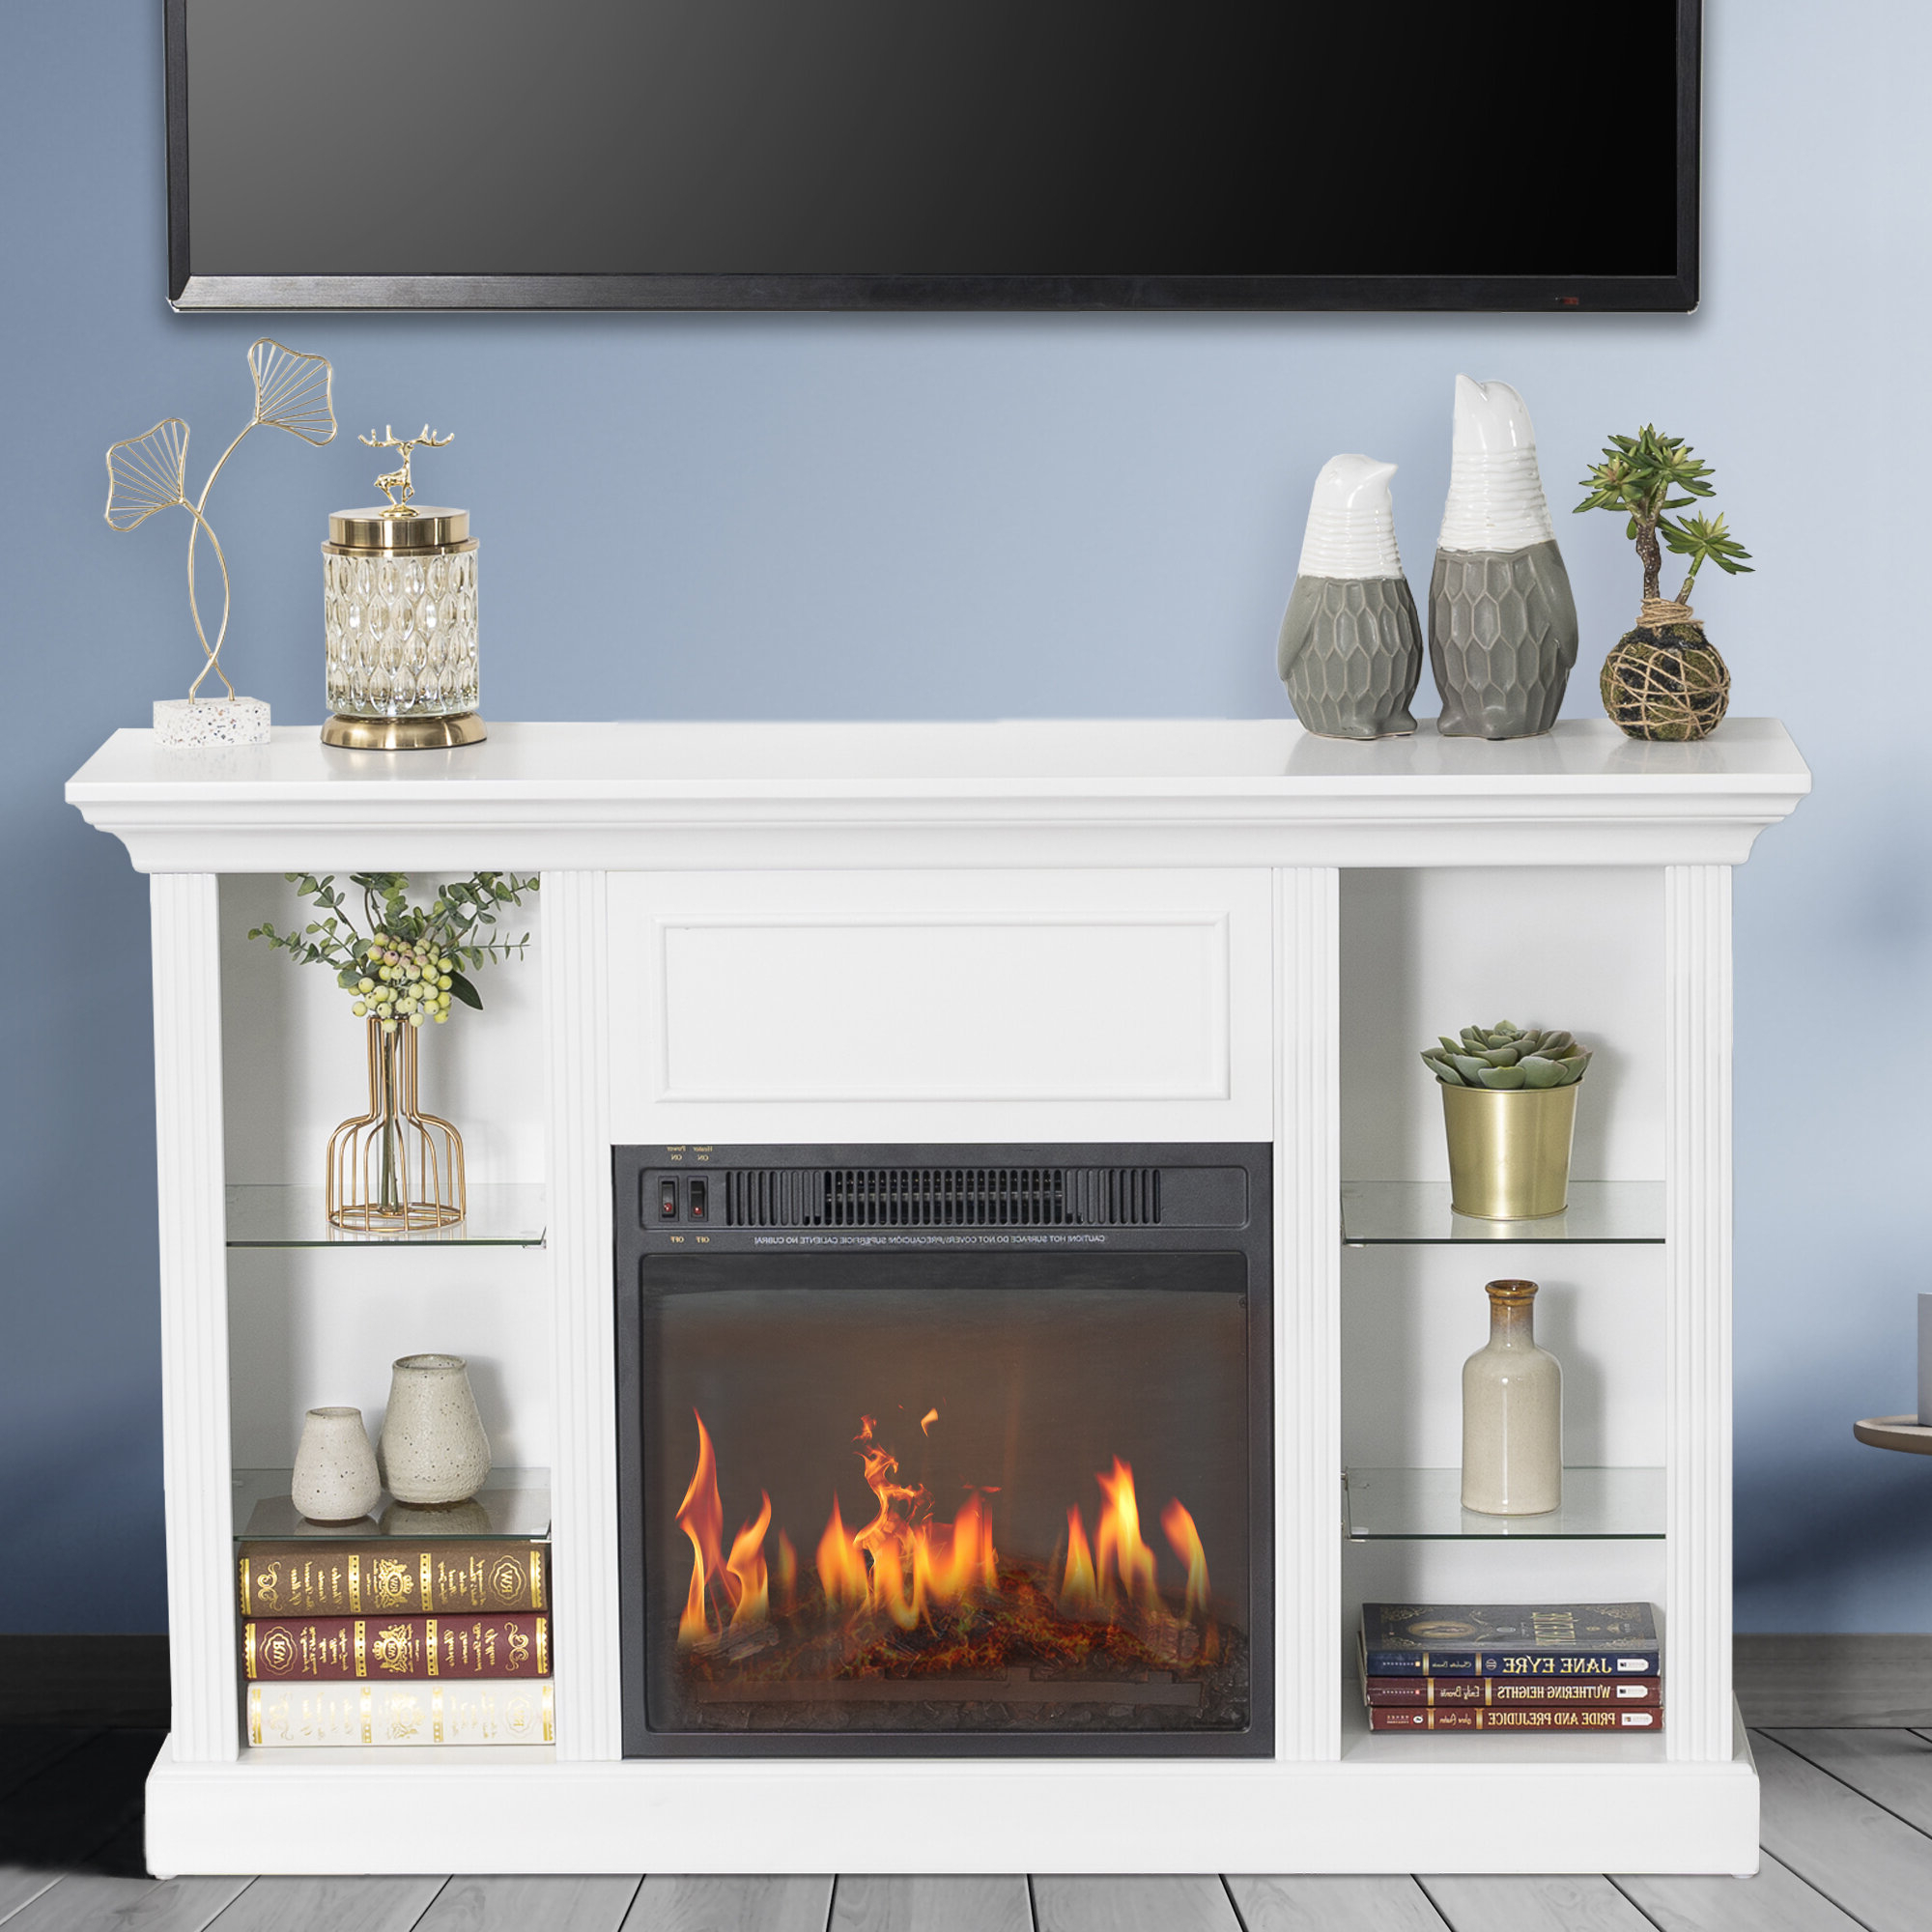 """Francisville Tv Stand For Tvs Up To 55"""" With Electric Fireplace Included For Eutropios Tv Stand With Electric Fireplace Included (View 4 of 20)"""